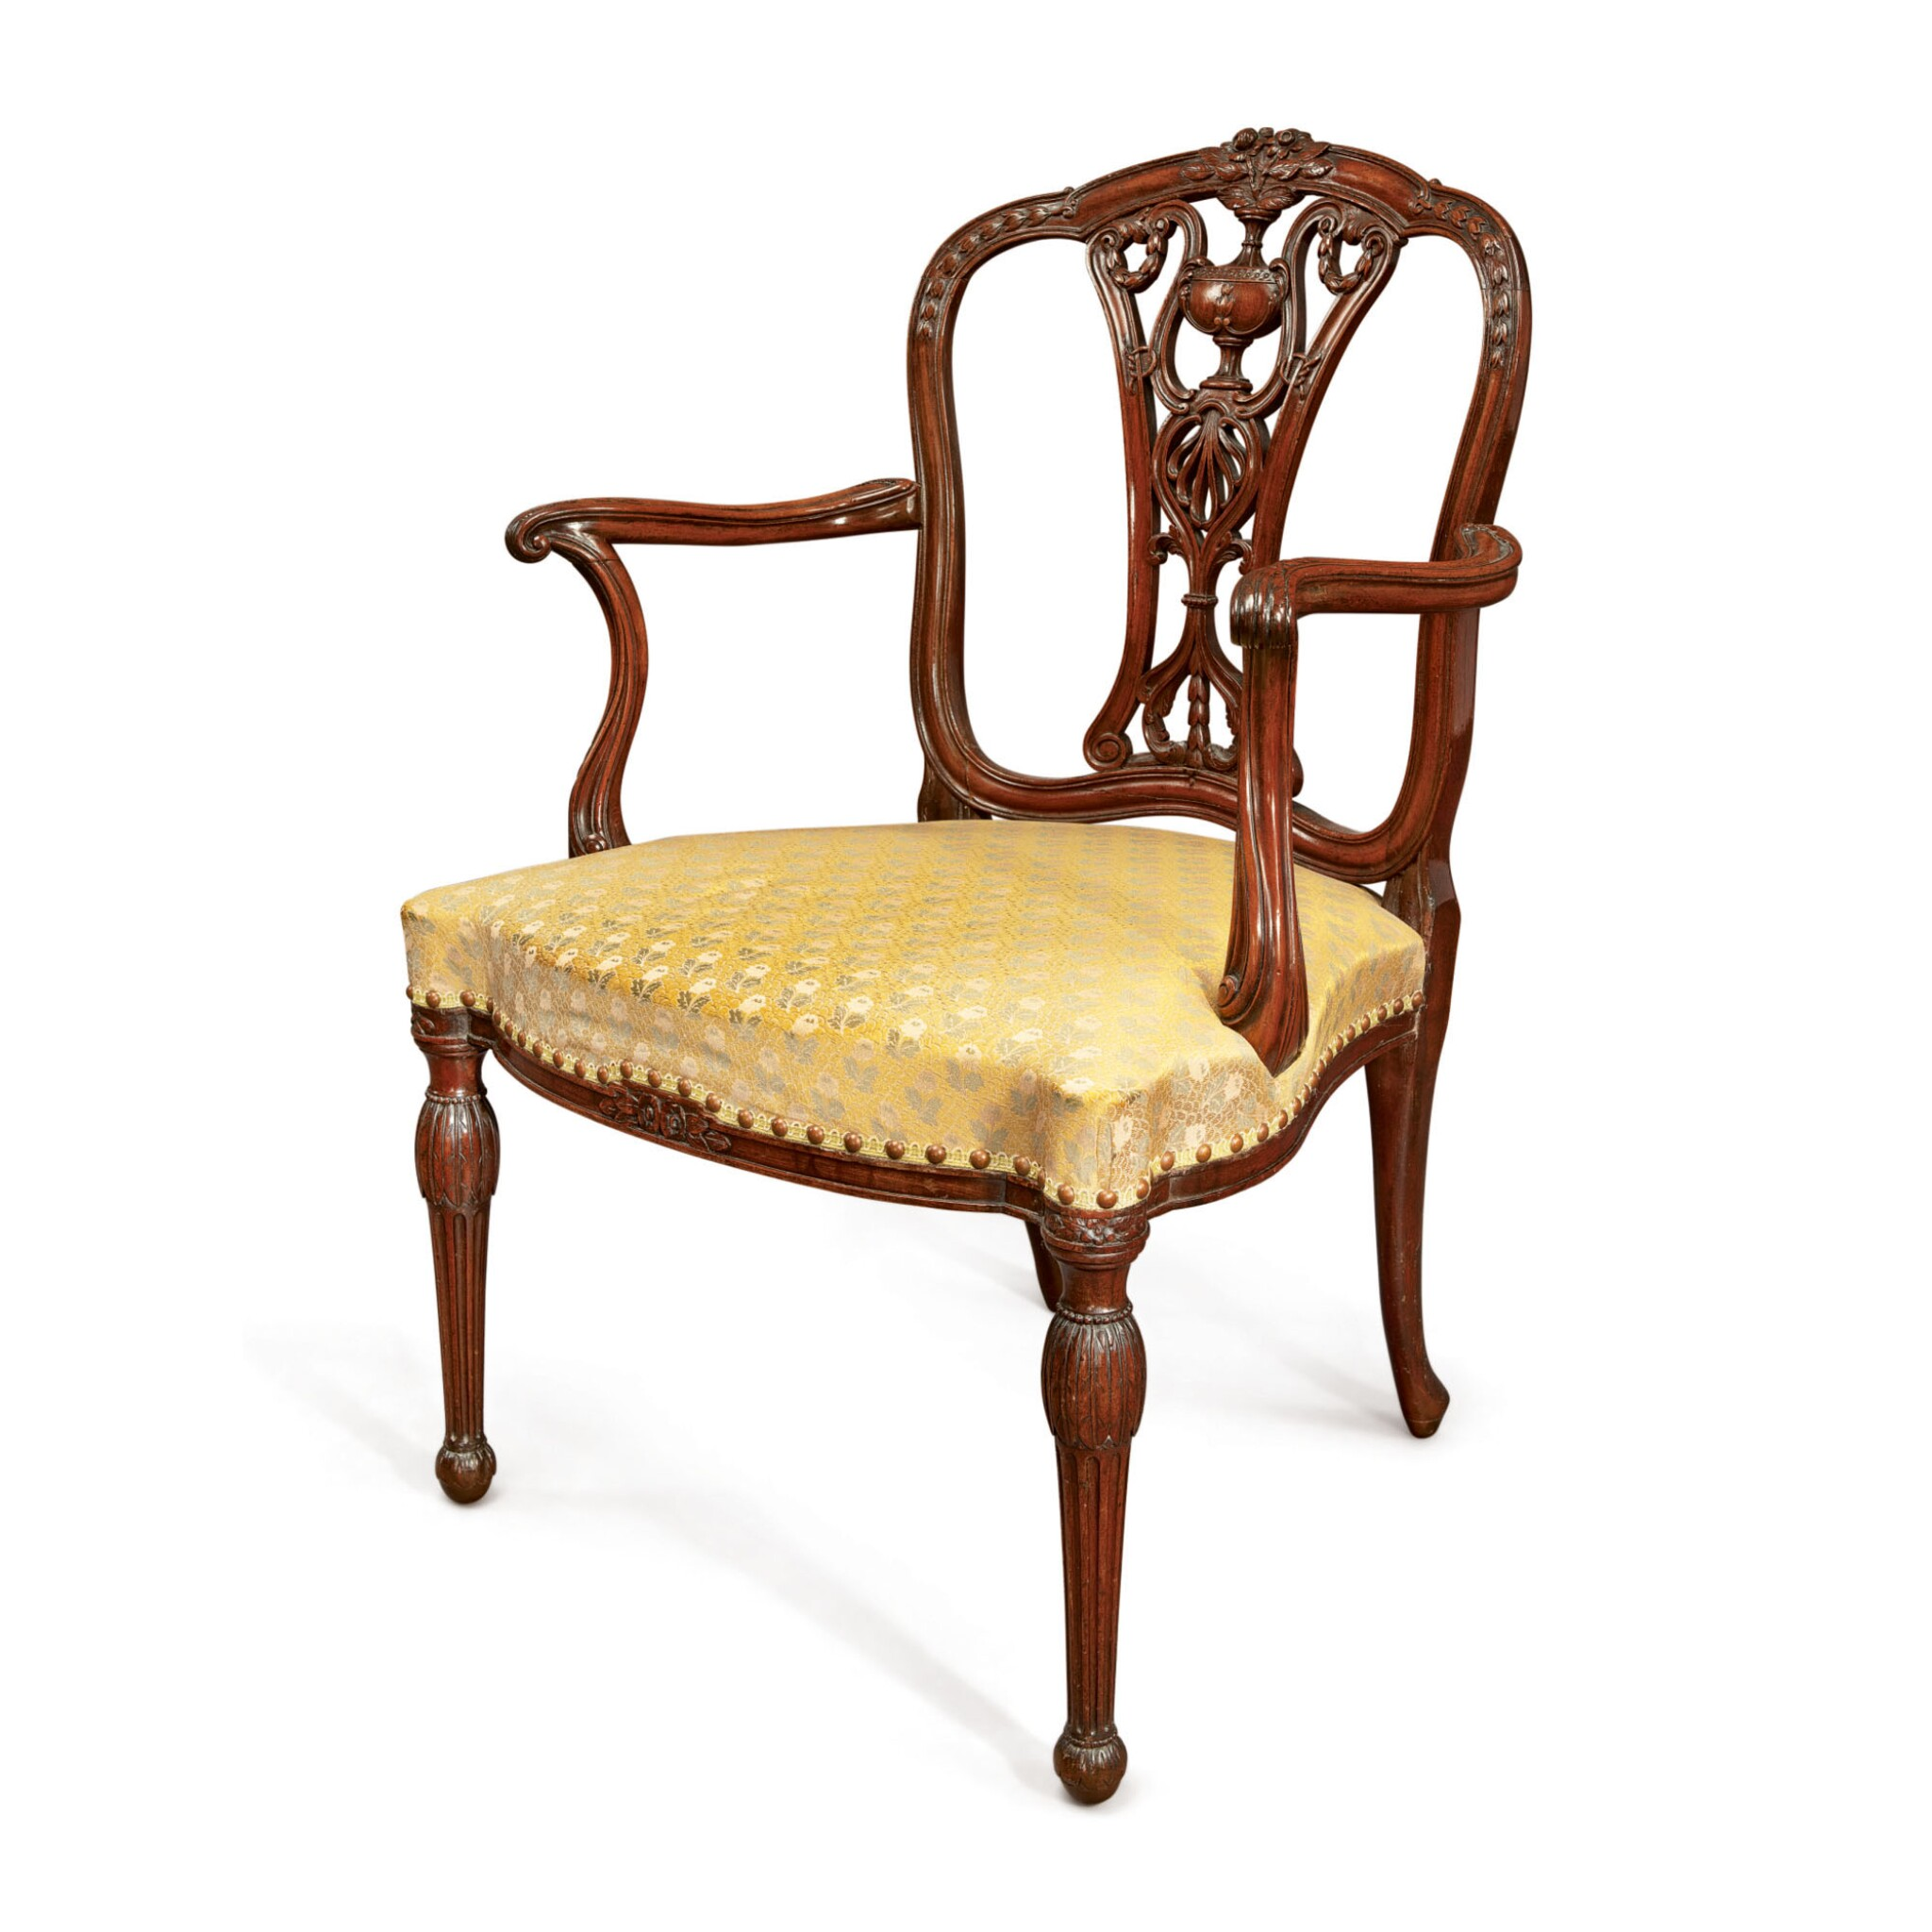 View full screen - View 1 of Lot 602. A GEORGE III MAHOGANY OPEN ARMCHAIR ATTRIBUTED TO WILLIAM LINNELL, CIRCA 1775.